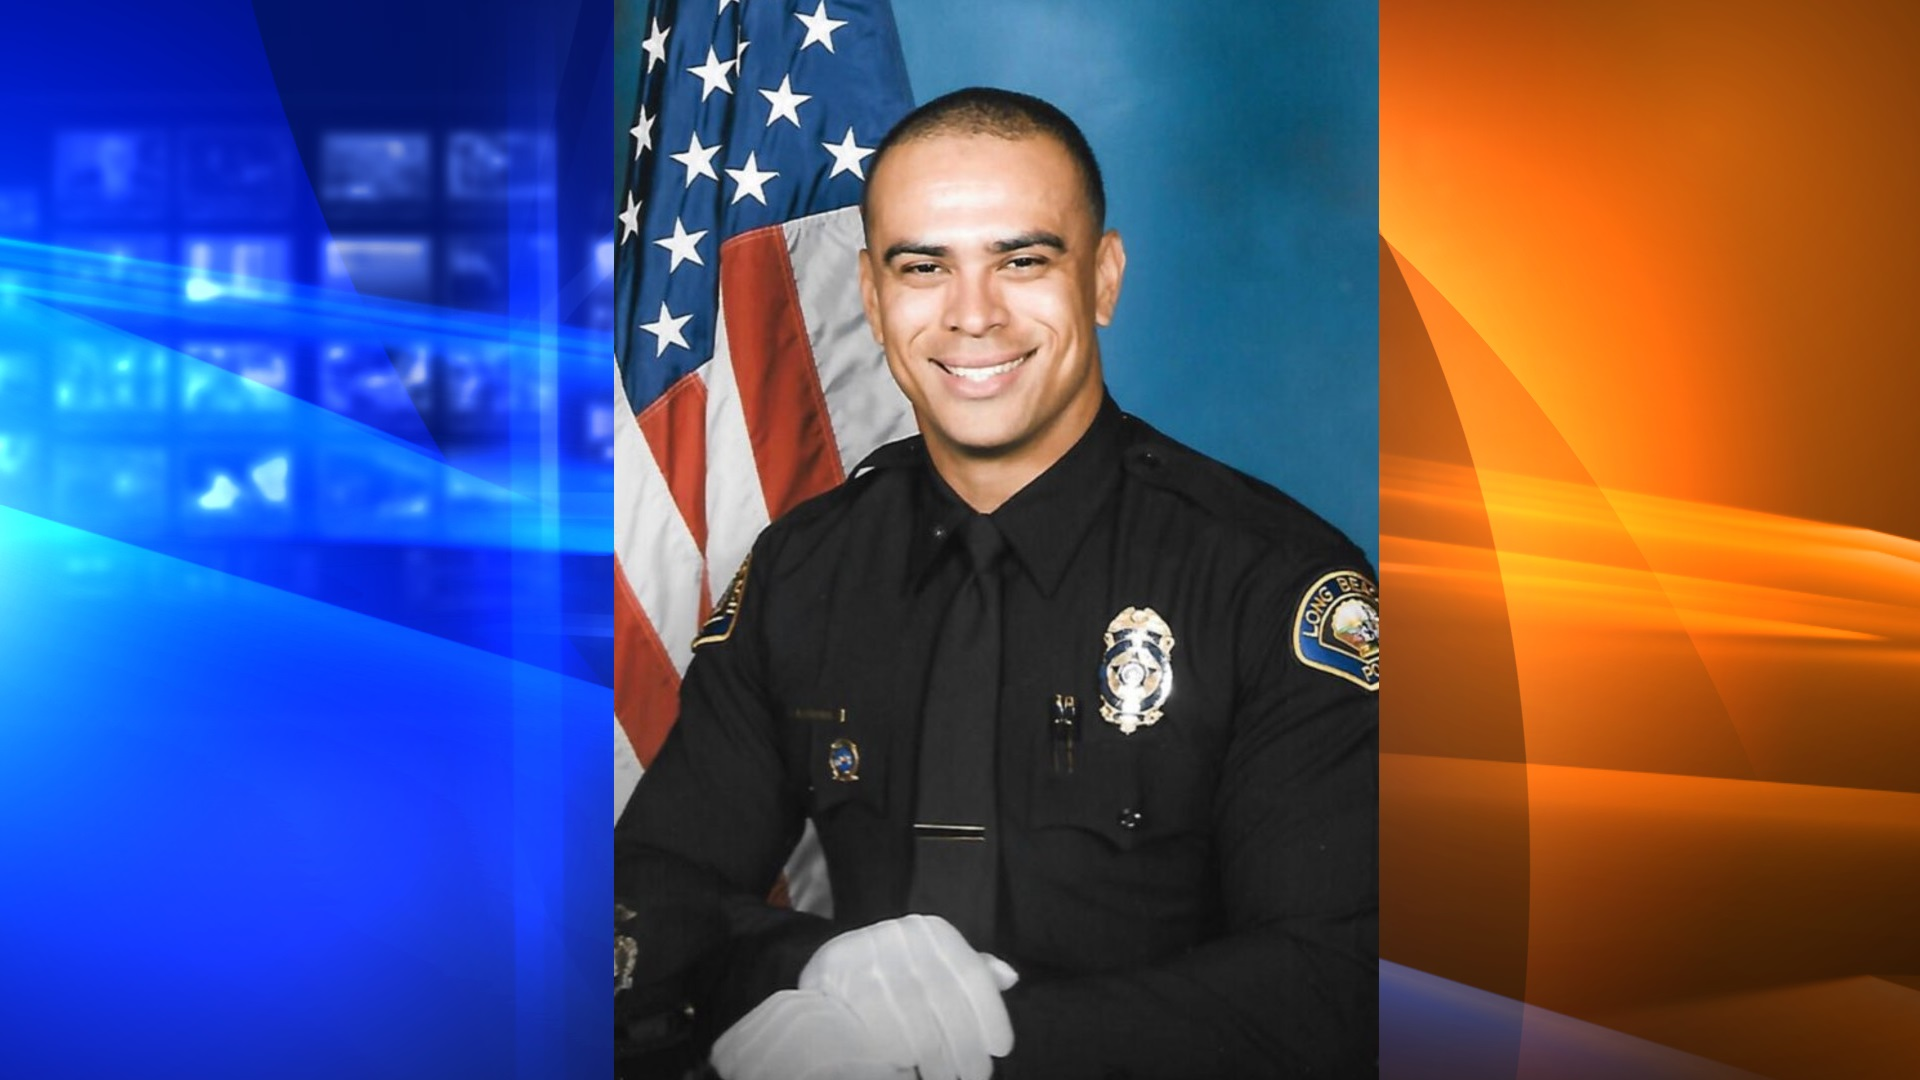 Long Beach Police Officer Anton Fischer, 33, of Long Beach, pictured in a photo released by the agency following his death on June 4, 2020.